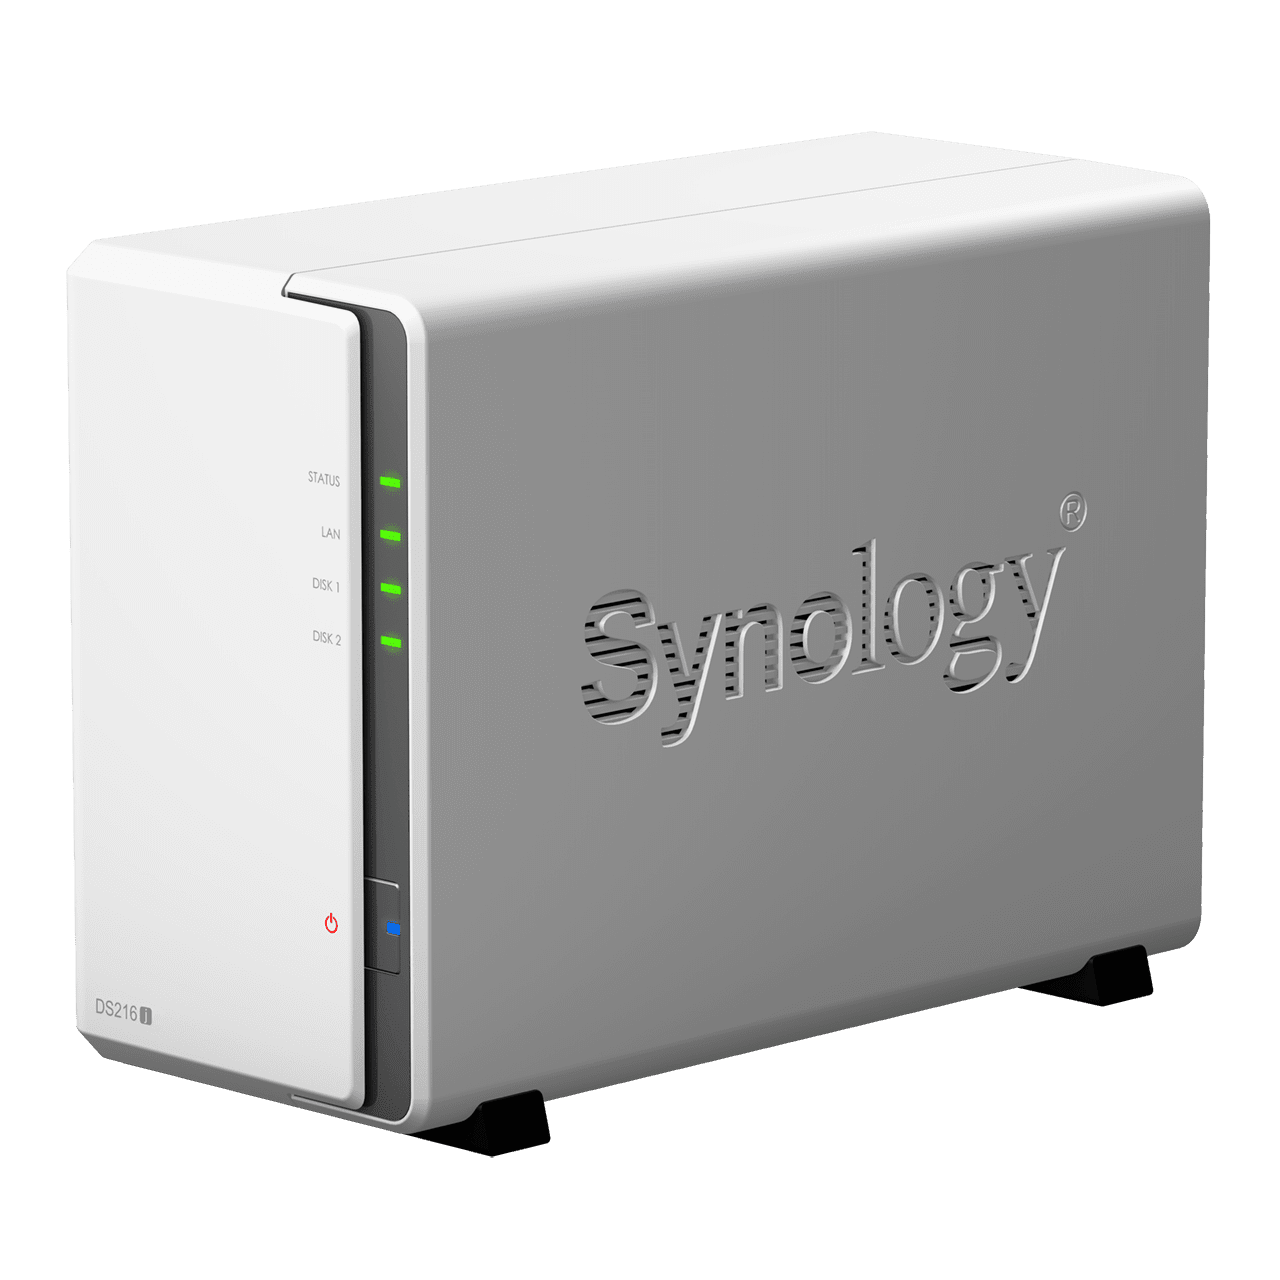 synology ds216j front angle